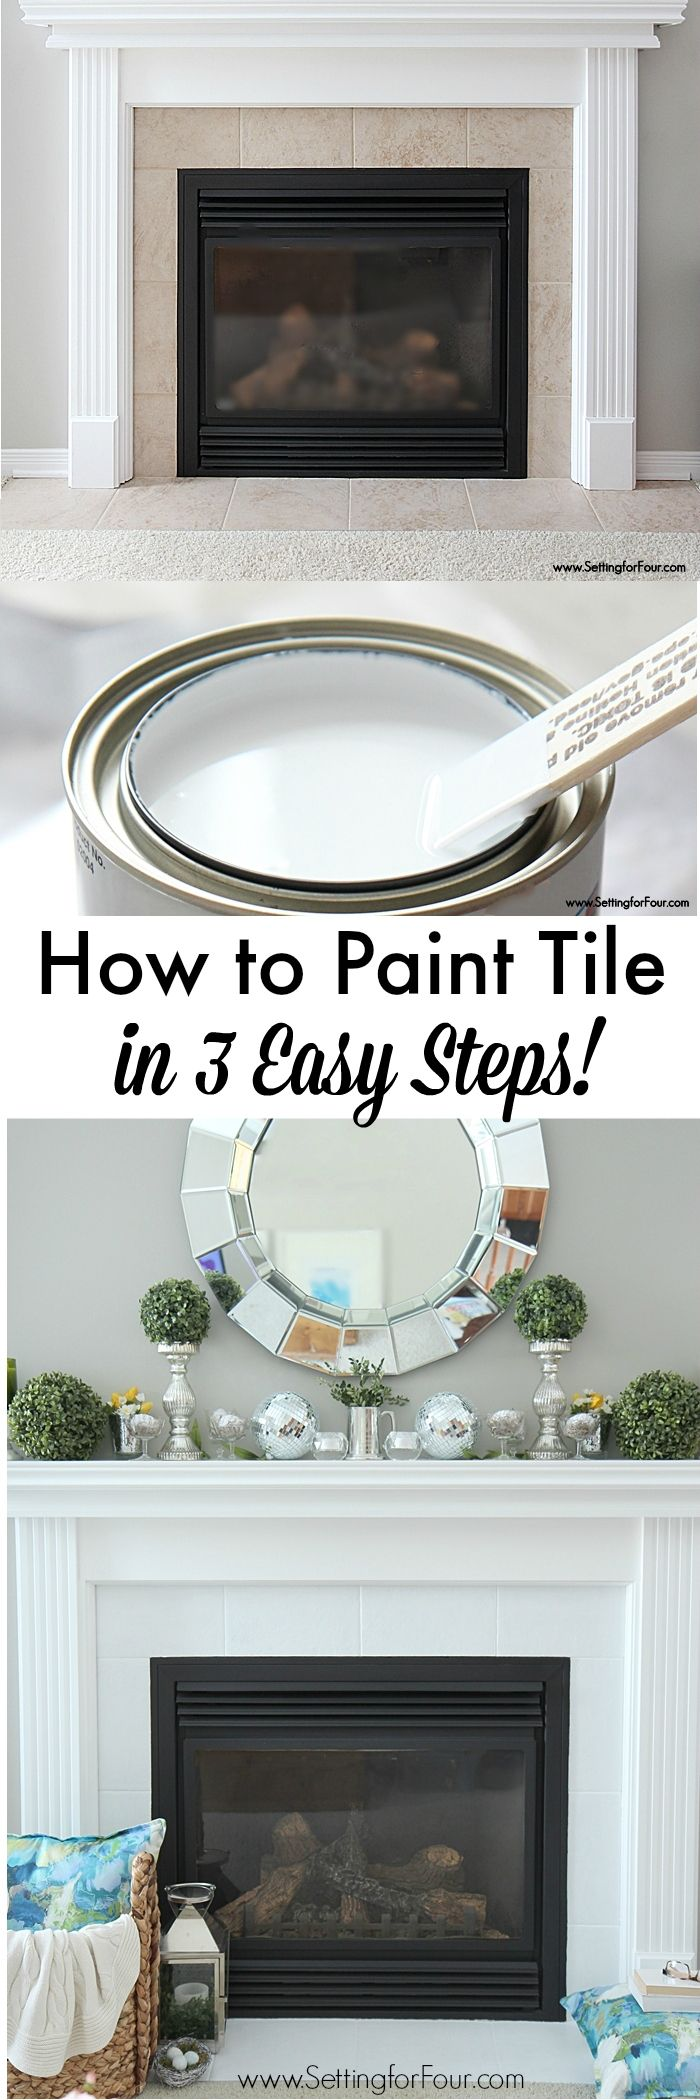 How to paint tile in 3 easy steps! See my home improvement step by step tutorial and supply list to turn blah tile into a beautiful white look!